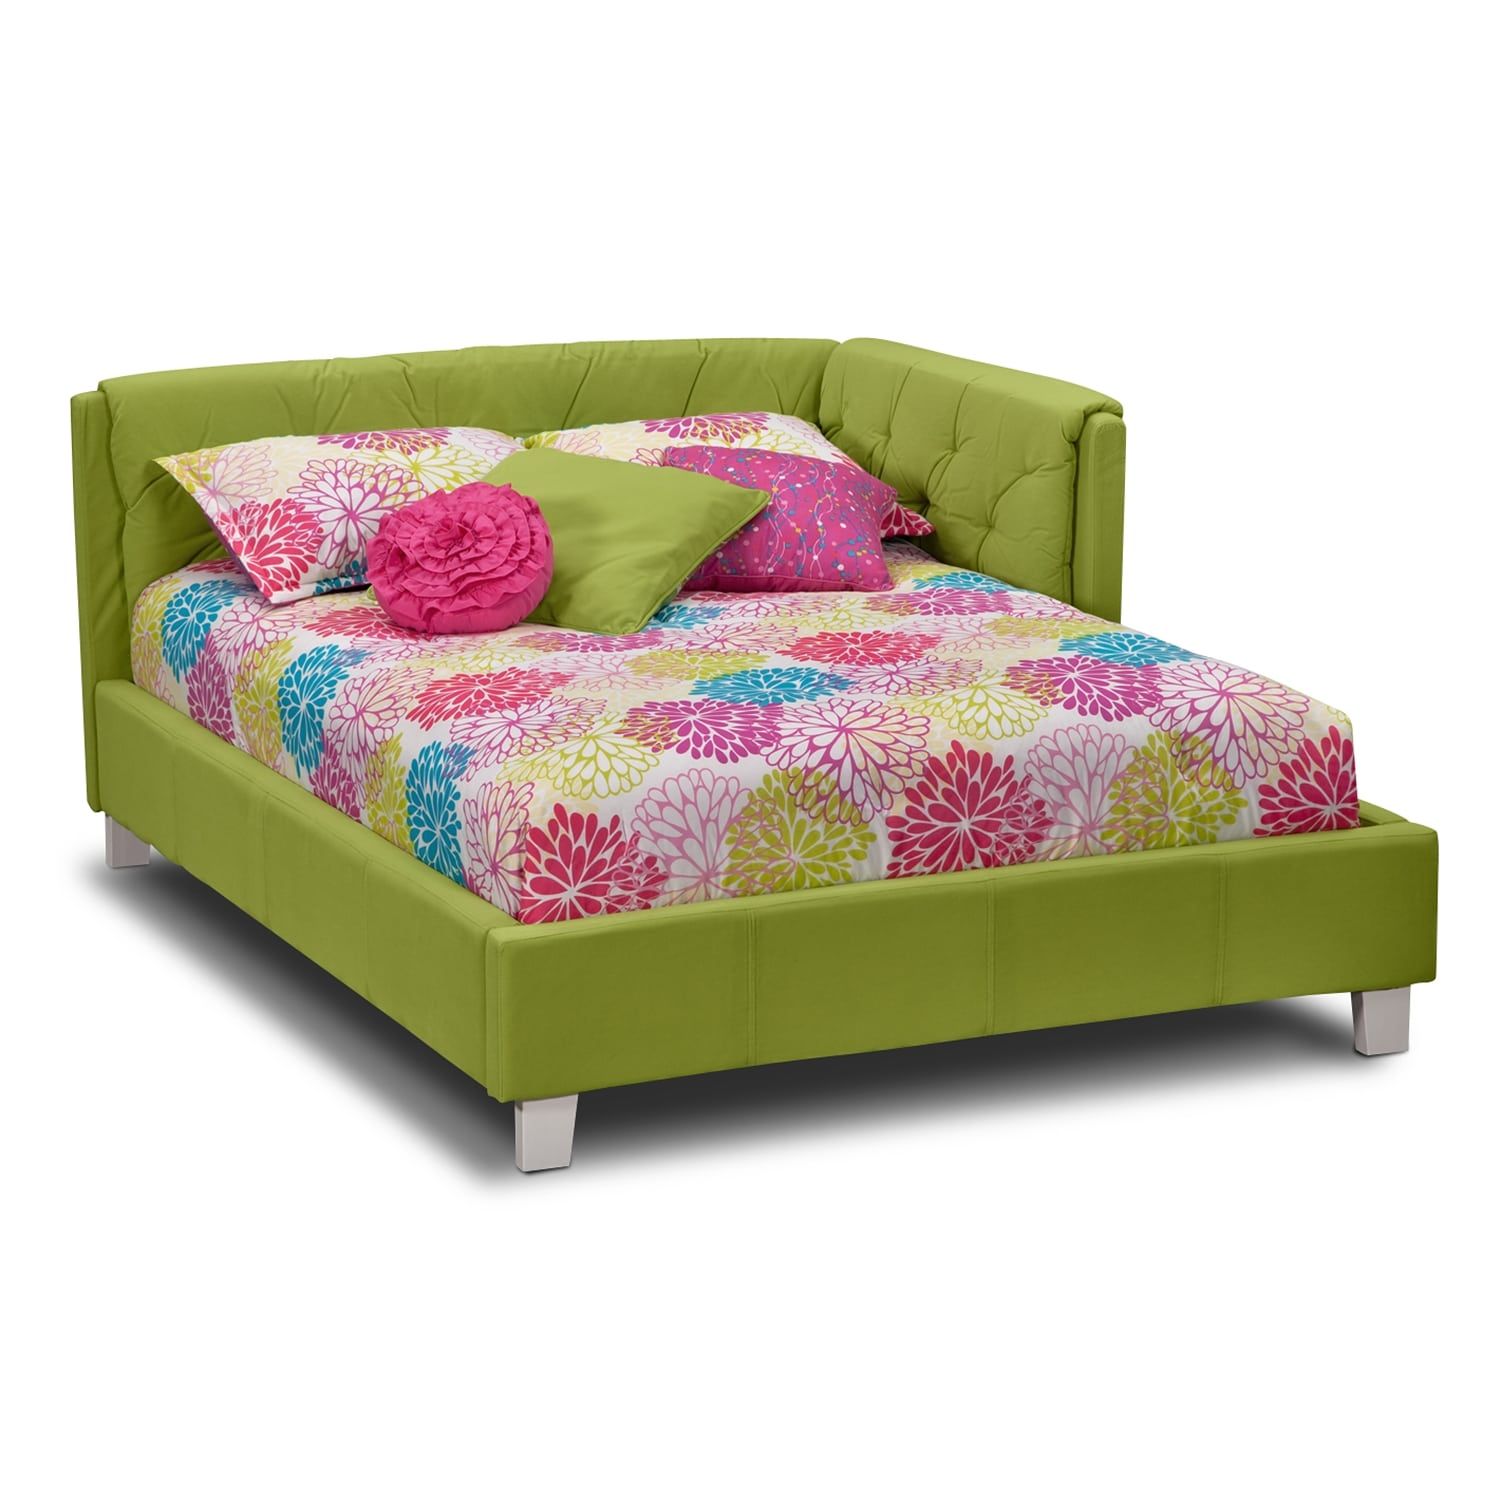 Full Beds Value City Value City Furniture